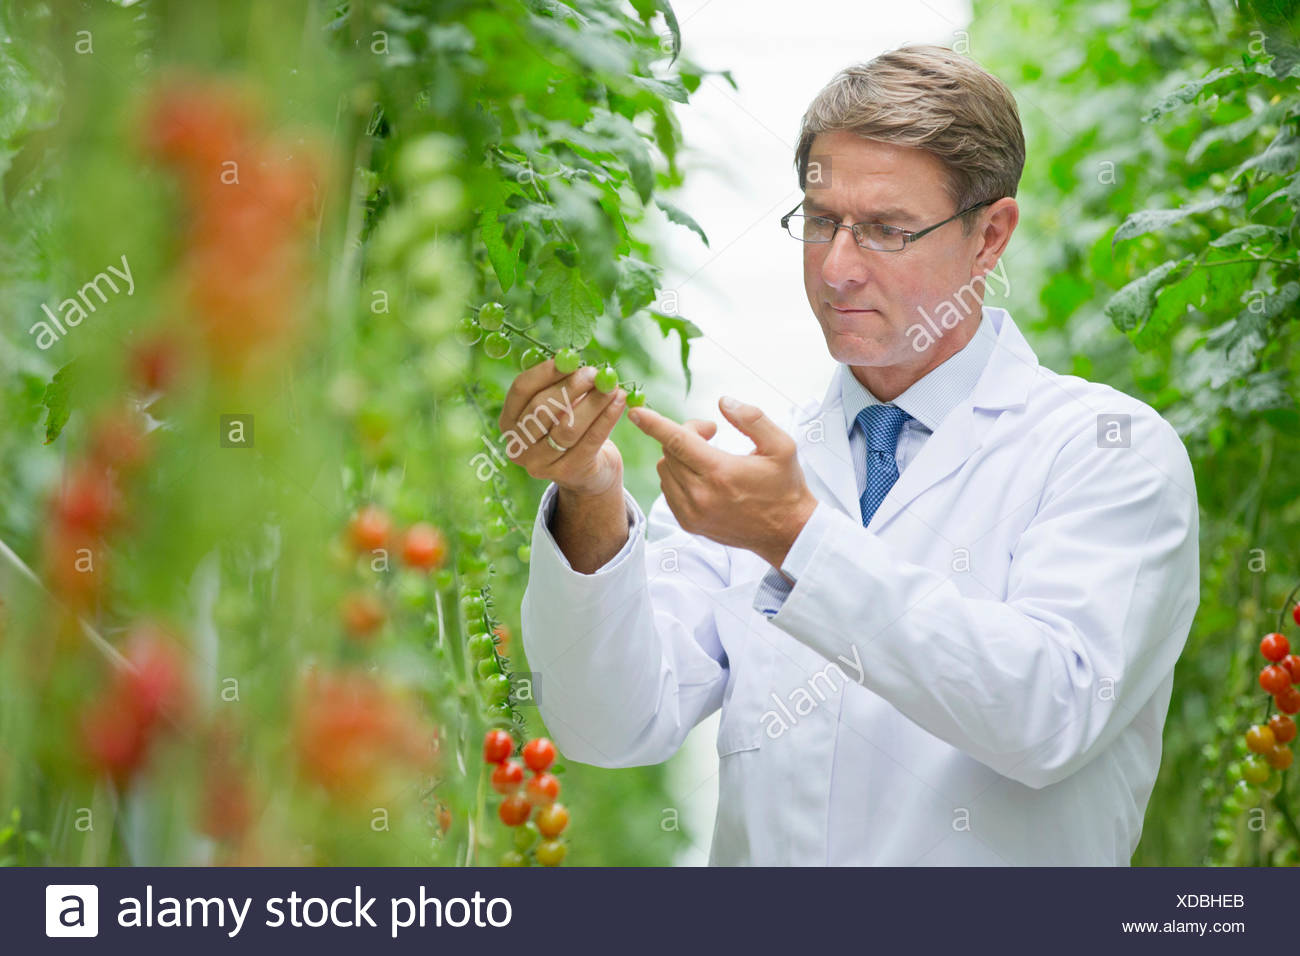 Focused food scientist examining vine tomato plants in greenhouse - Stock Image